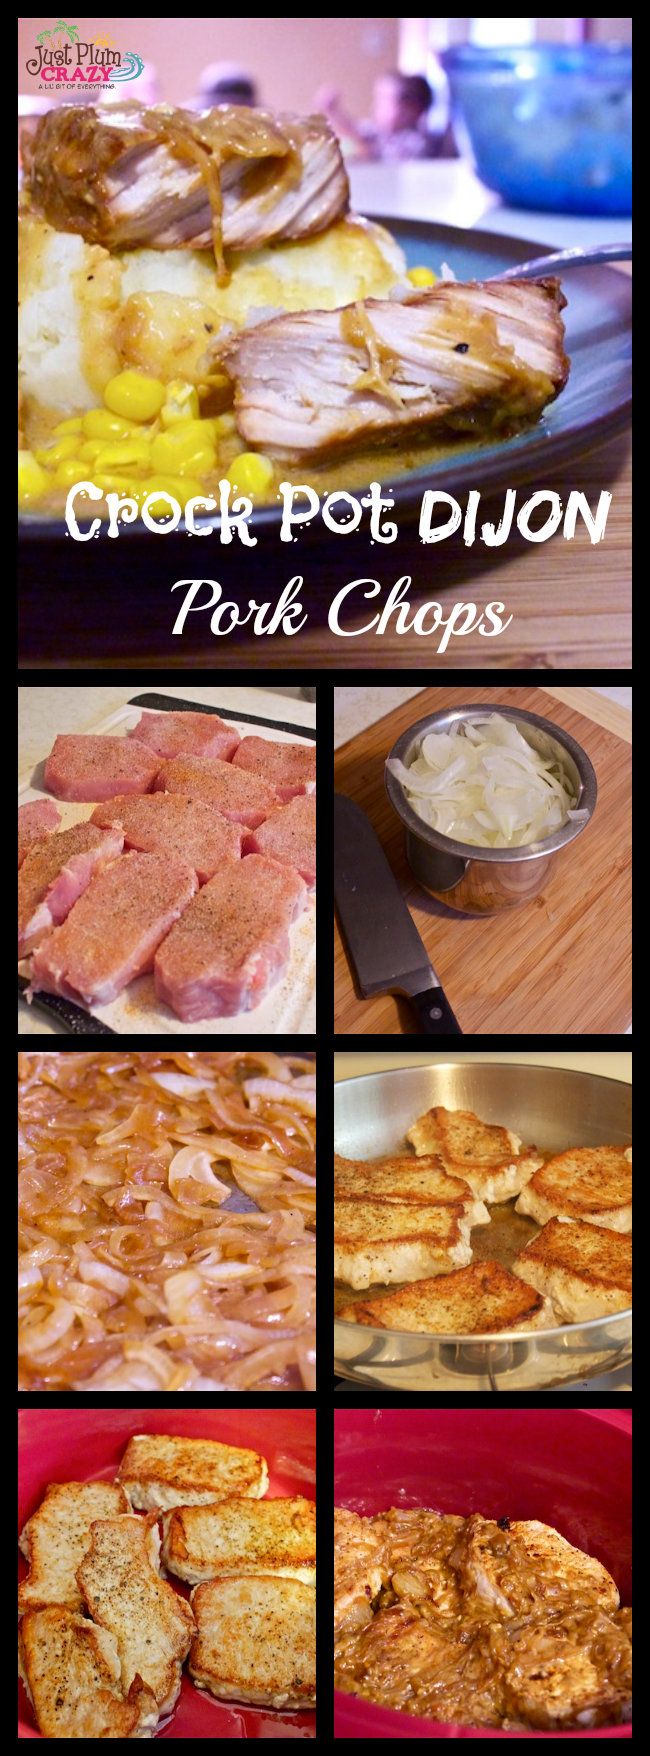 Slow cooked pork chops pair nicely with a Dijon cream sauce for a tasty twist to your pork chop routine. It only takes about 30 minutes to throw together.